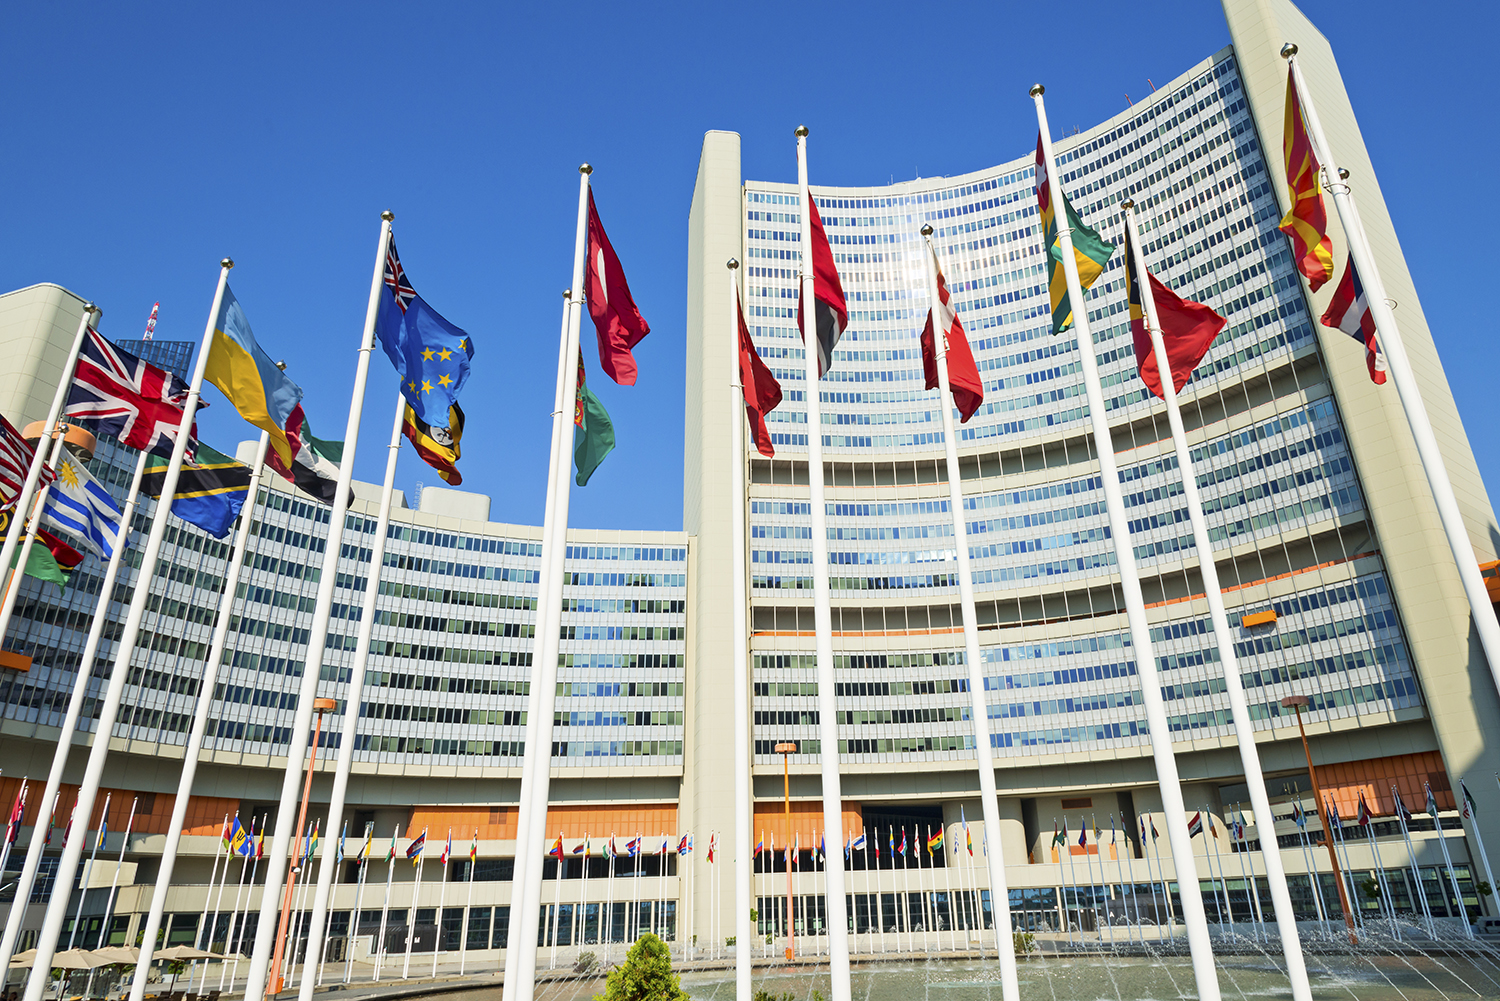 IAEA Headquarters in Vienna Austria